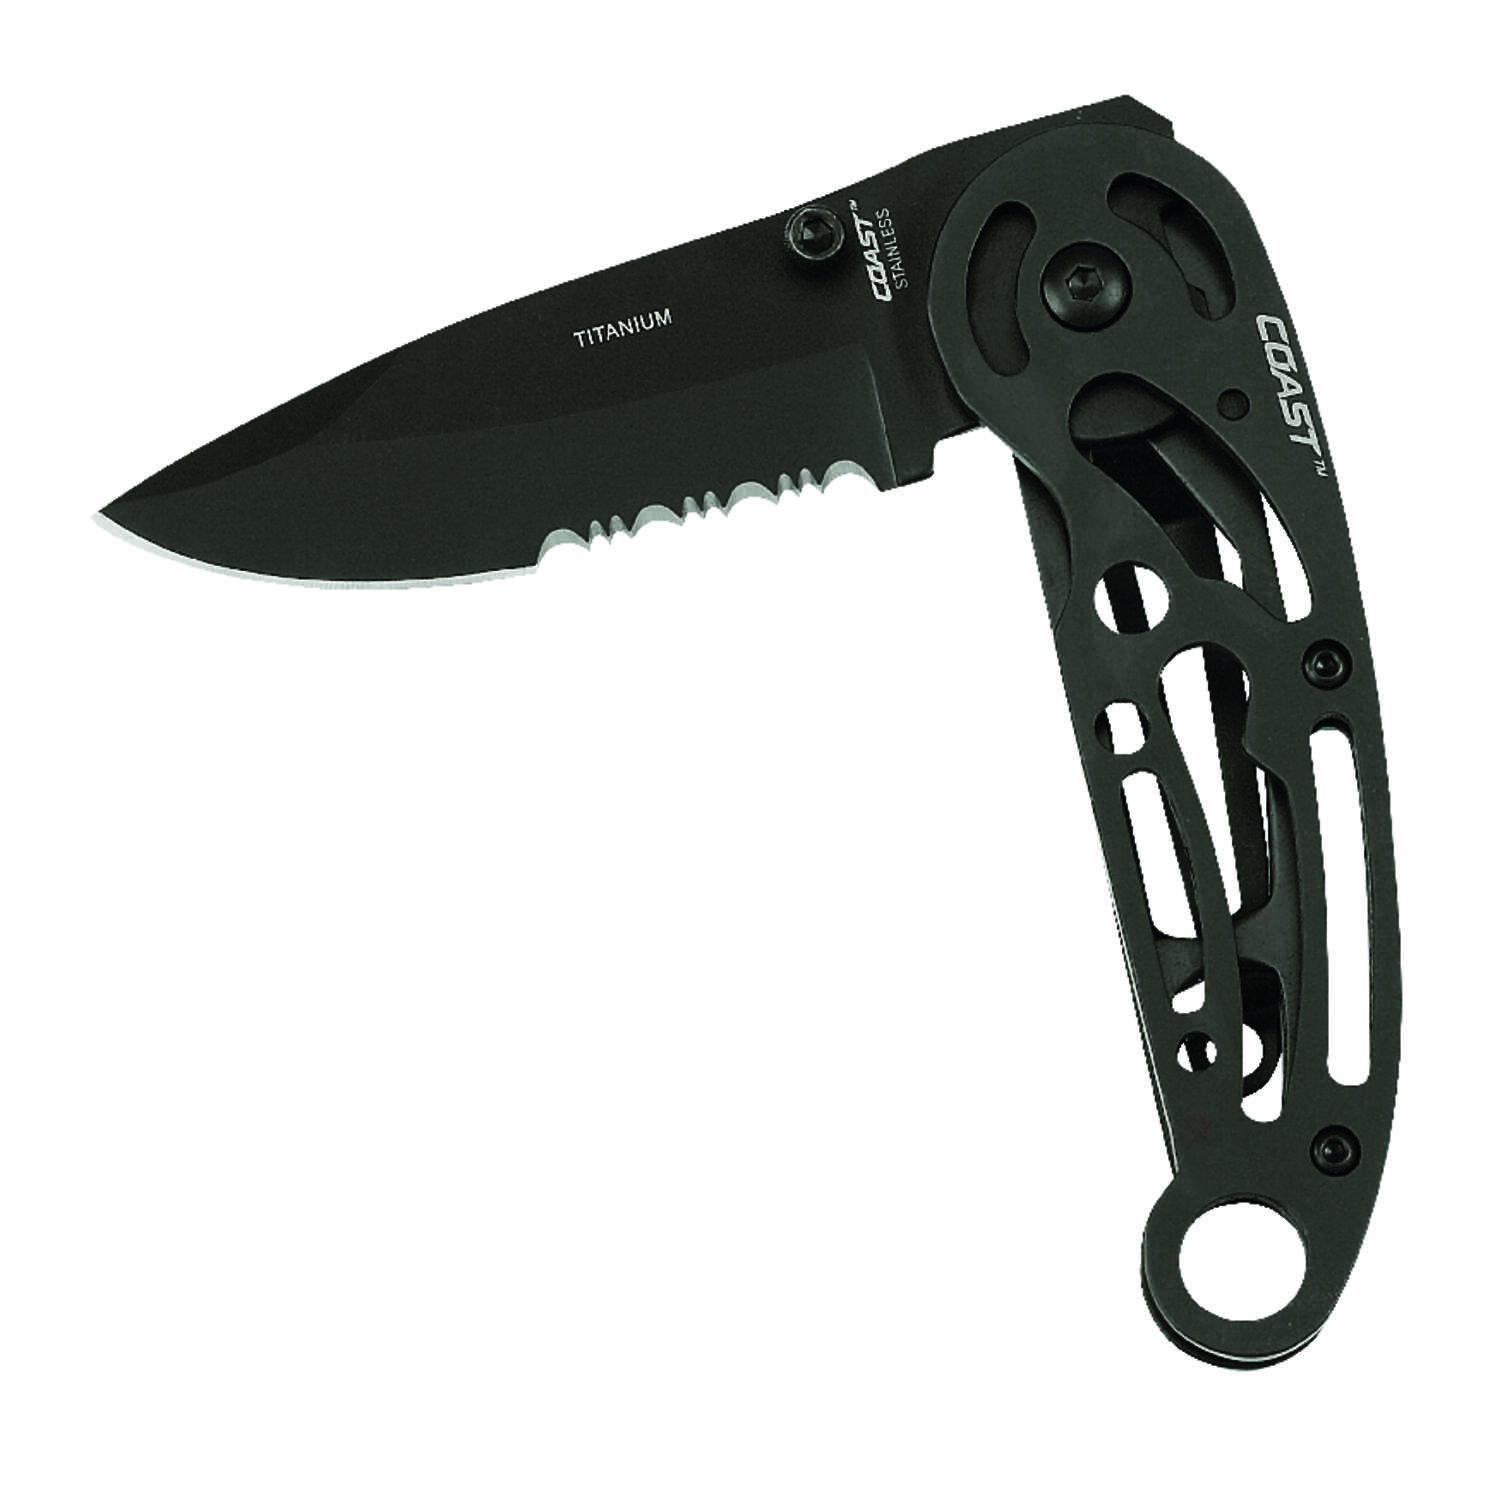 Coast  LX240  Black  Stainless Steel  6.87 in. Knife